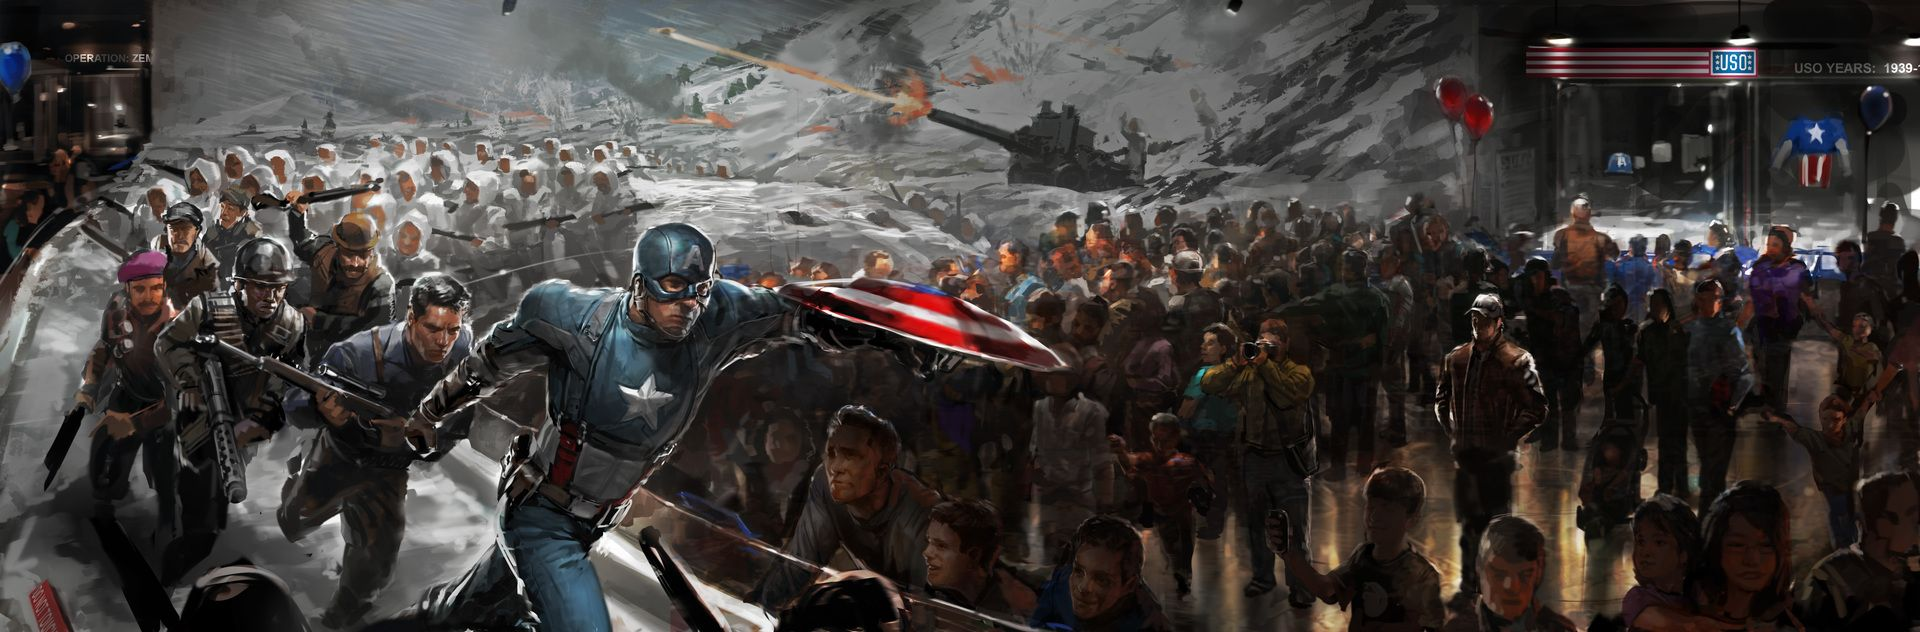 Captain America The Winter Soldier Museum concept art